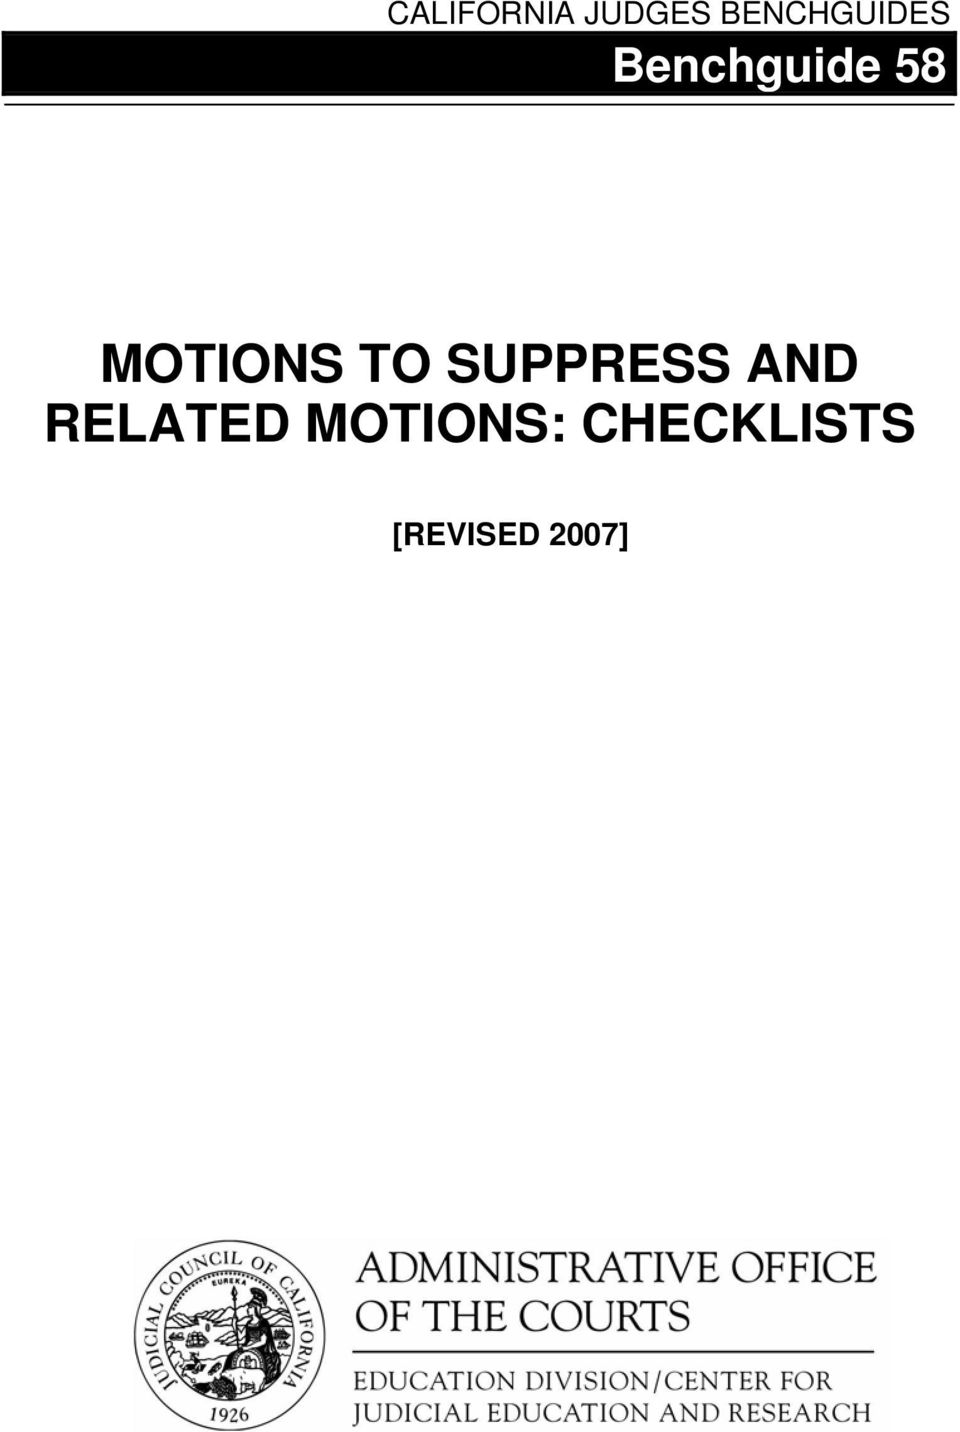 MOTIONS TO SUPPRESS AND